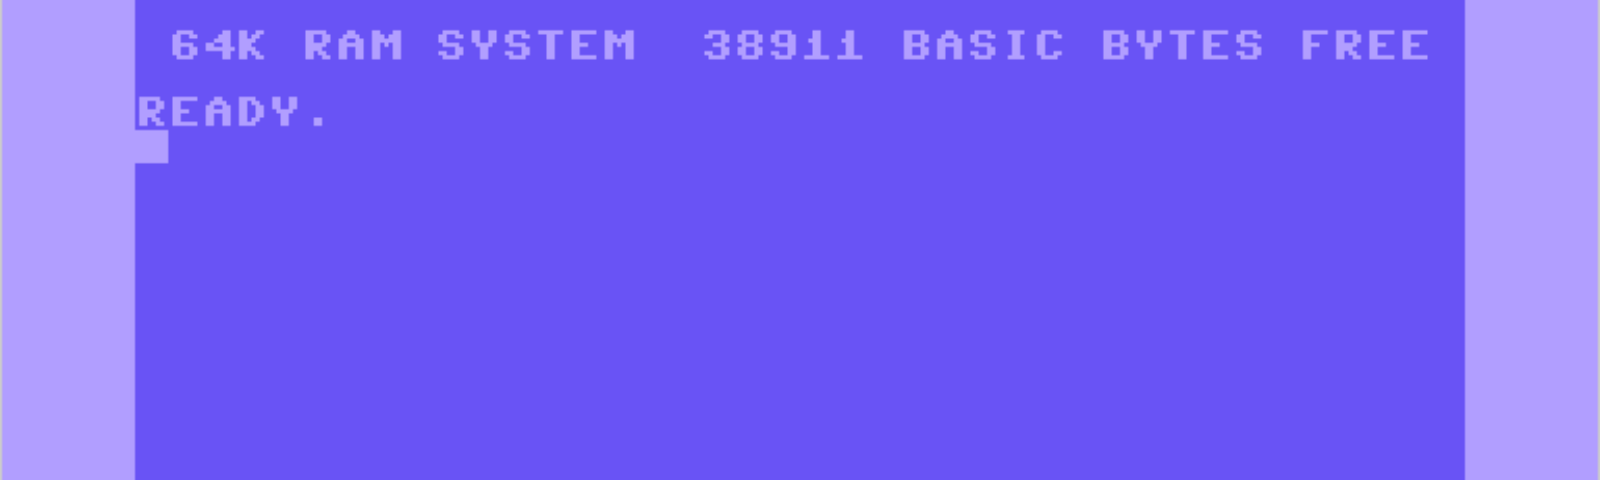 A Love Letter to the Commodore 64 - By Christer Enfors